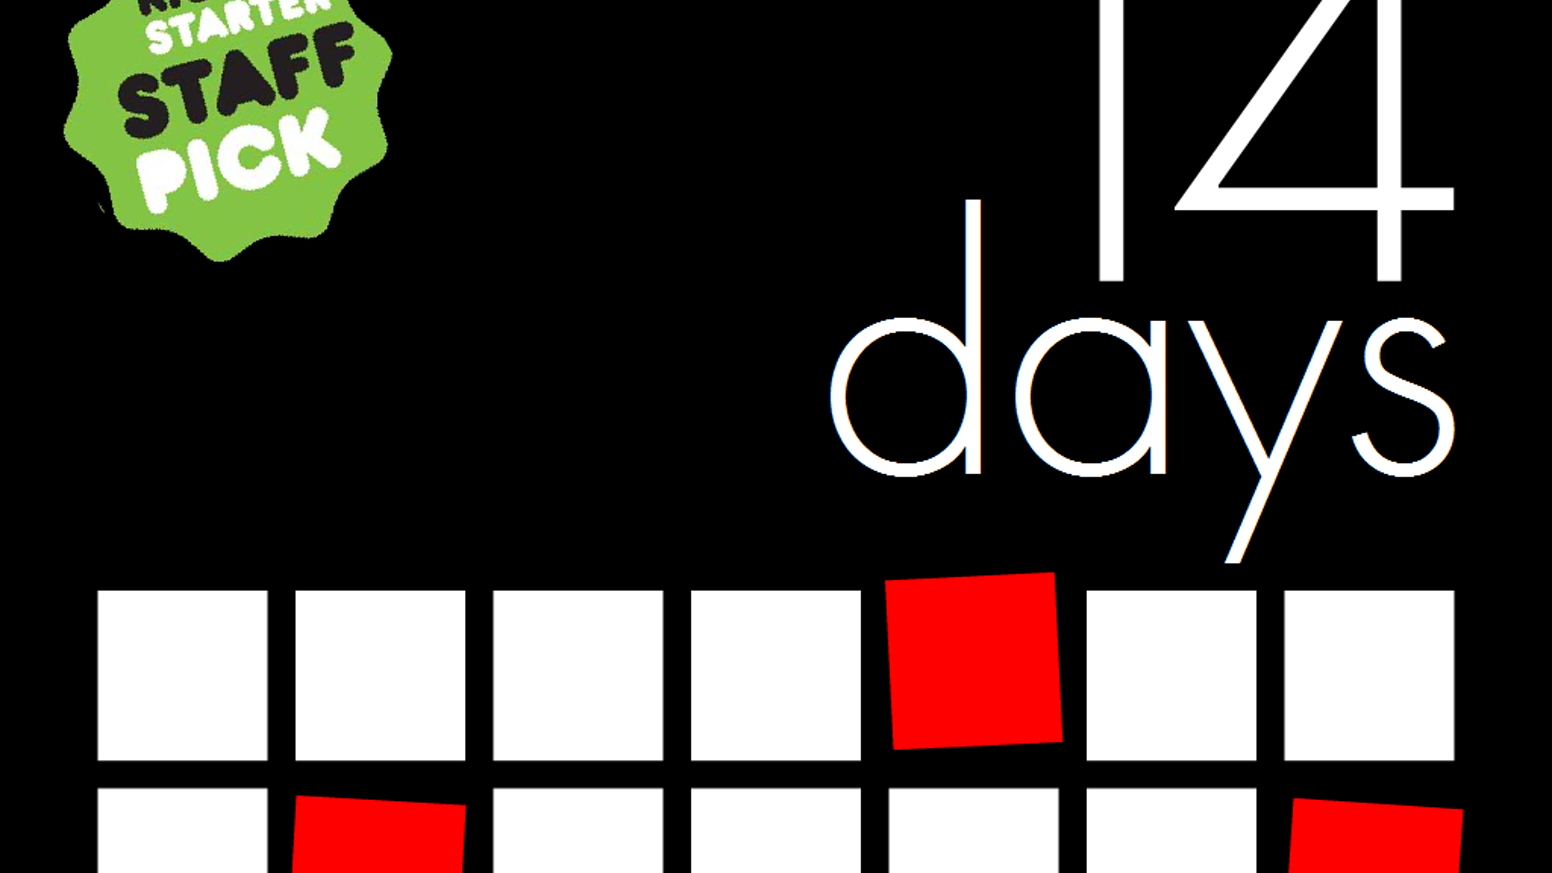 A 2-player tabletop game about balancing day-to-day responsibilities around life with migraines.